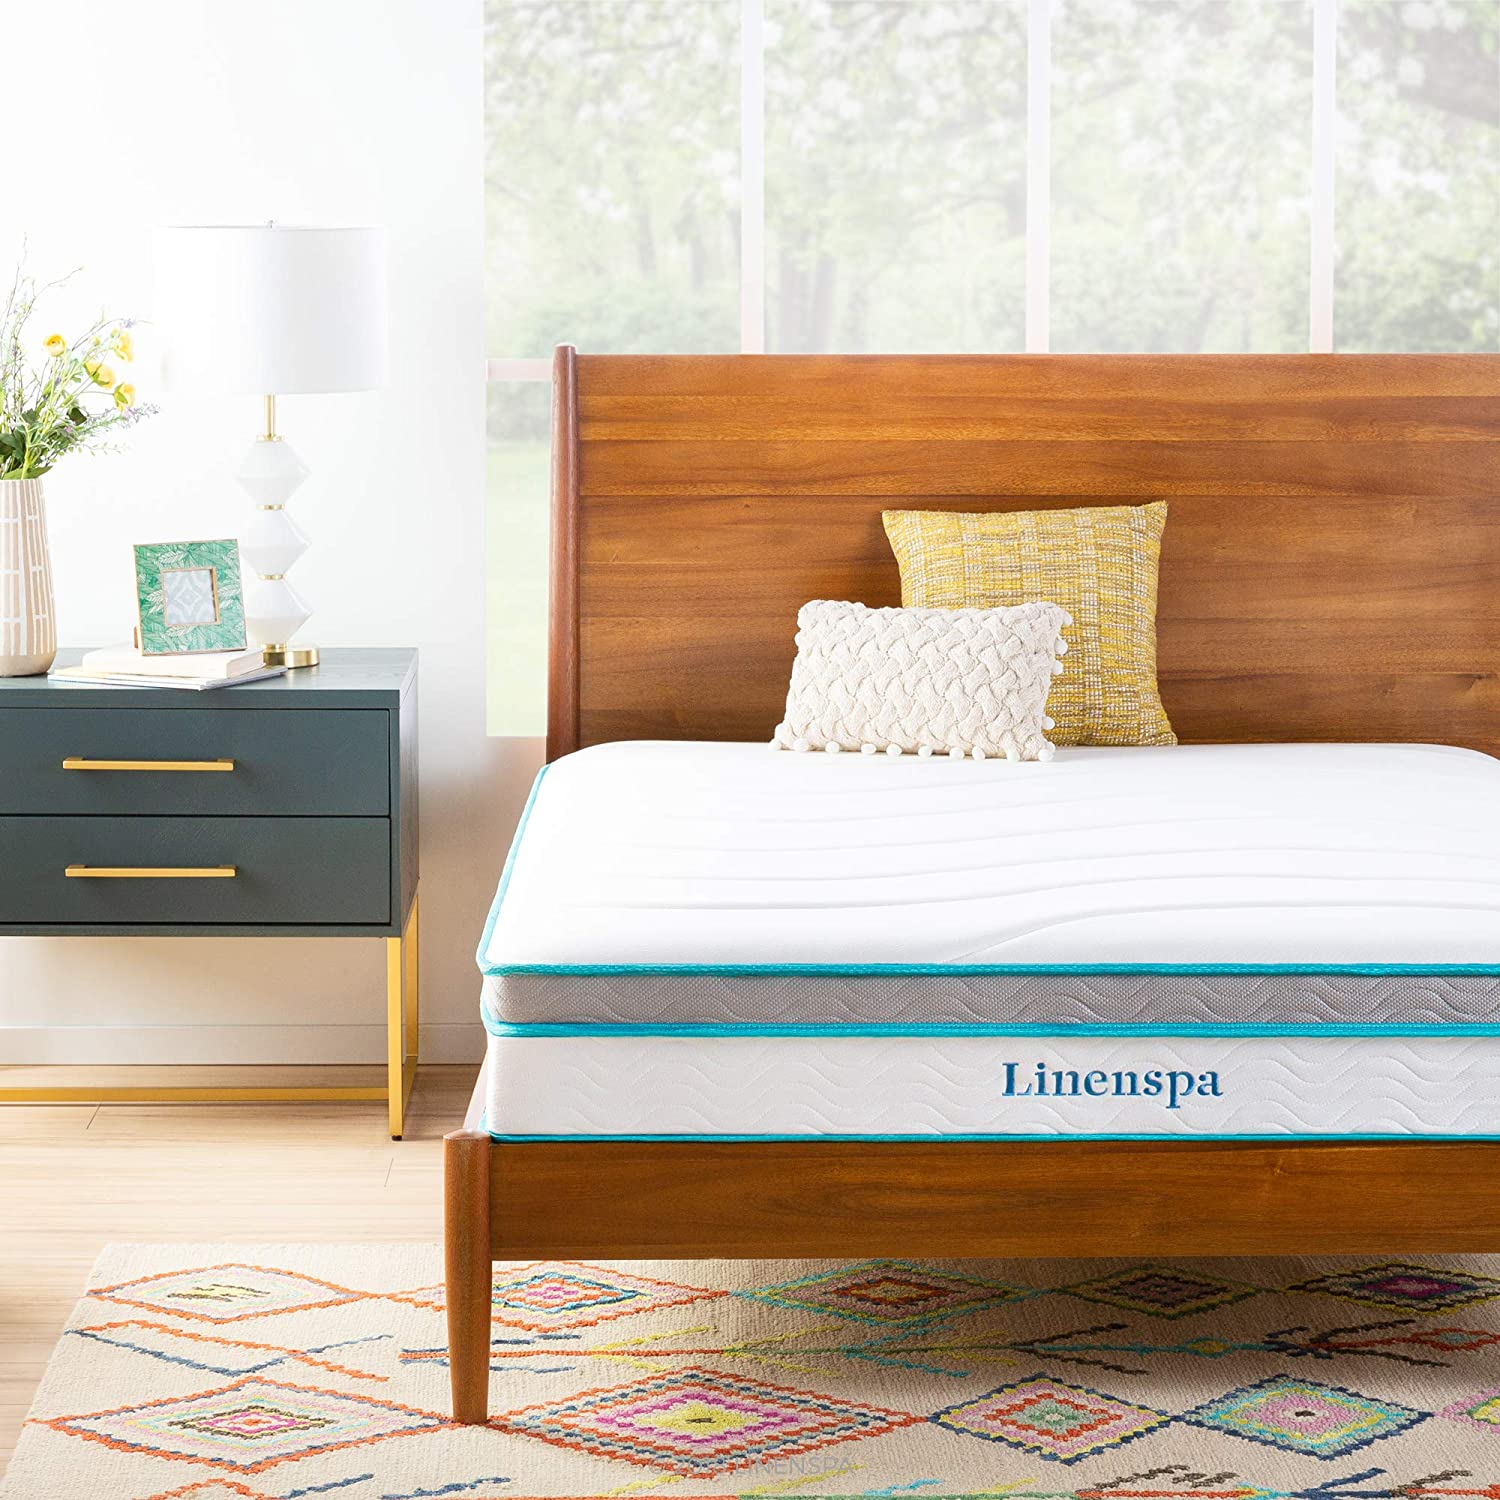 Linenspa Memory Foam and Innerspring Hybrid Mattress - Medium Feel - Twin,10 Inch